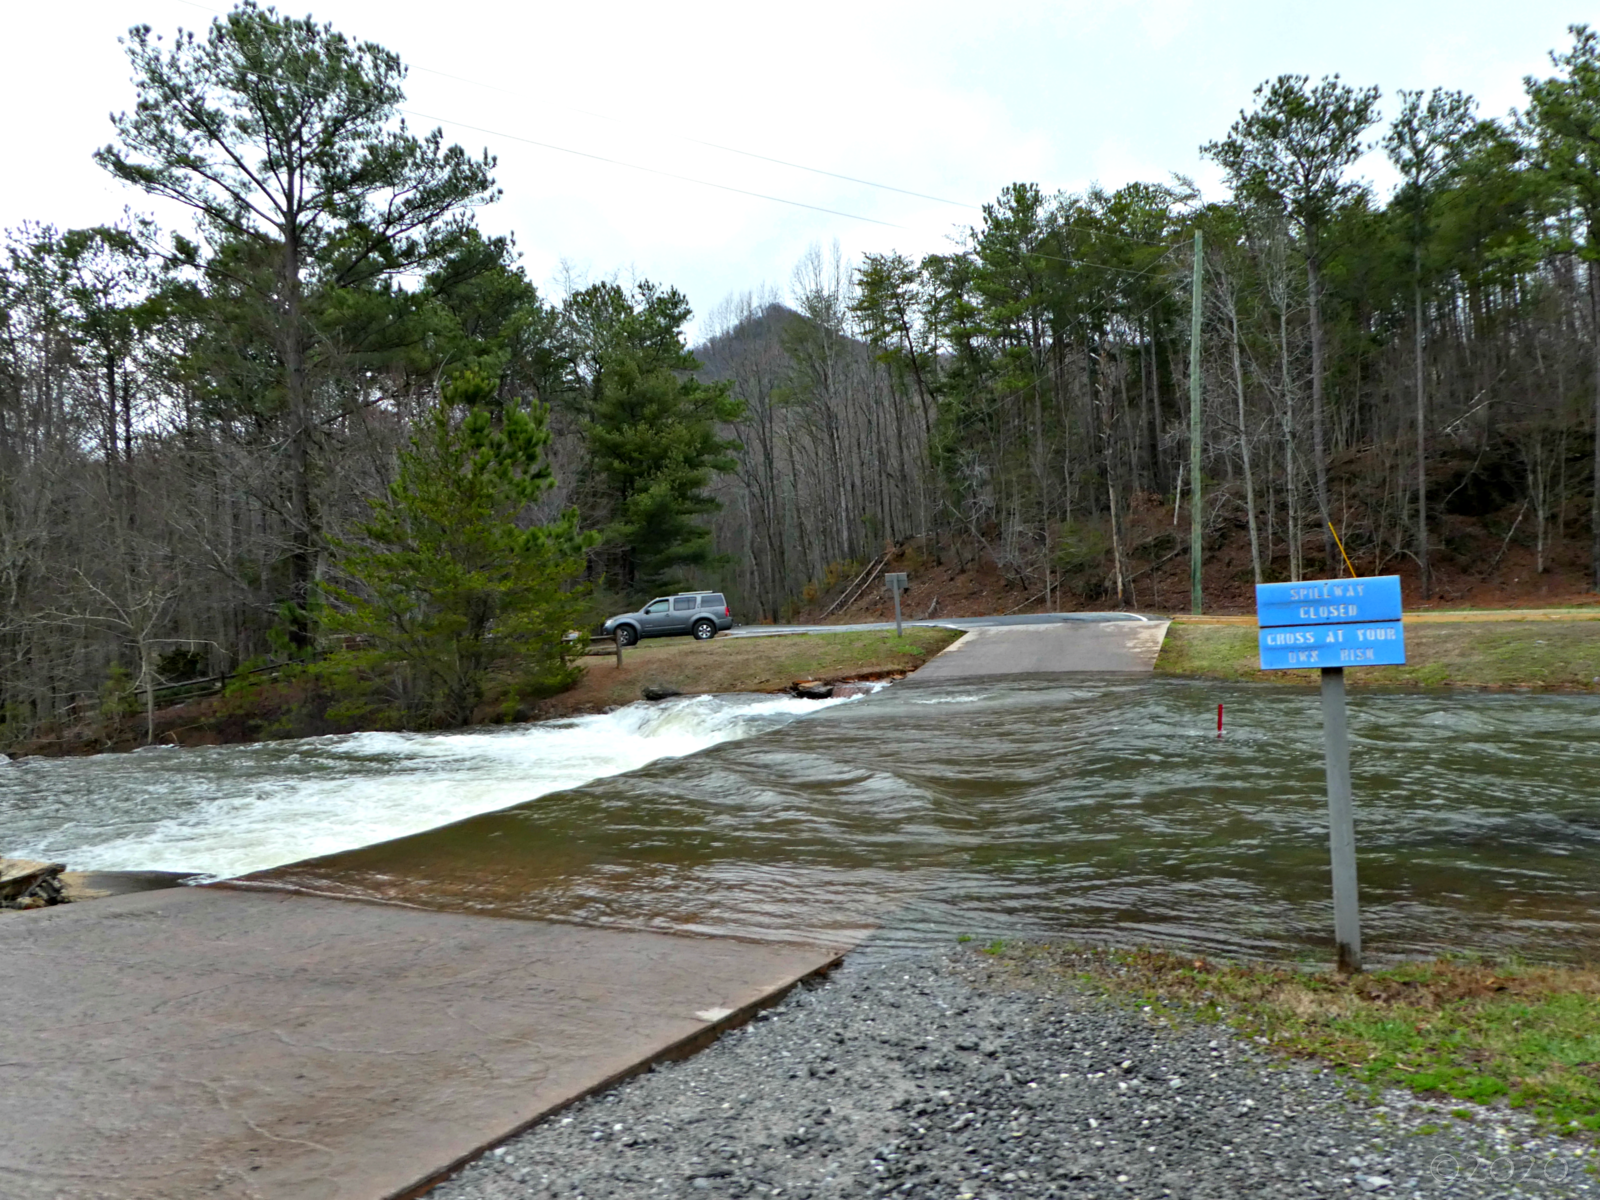 February 13, 2020 - Spillway flowing in Bent Tree